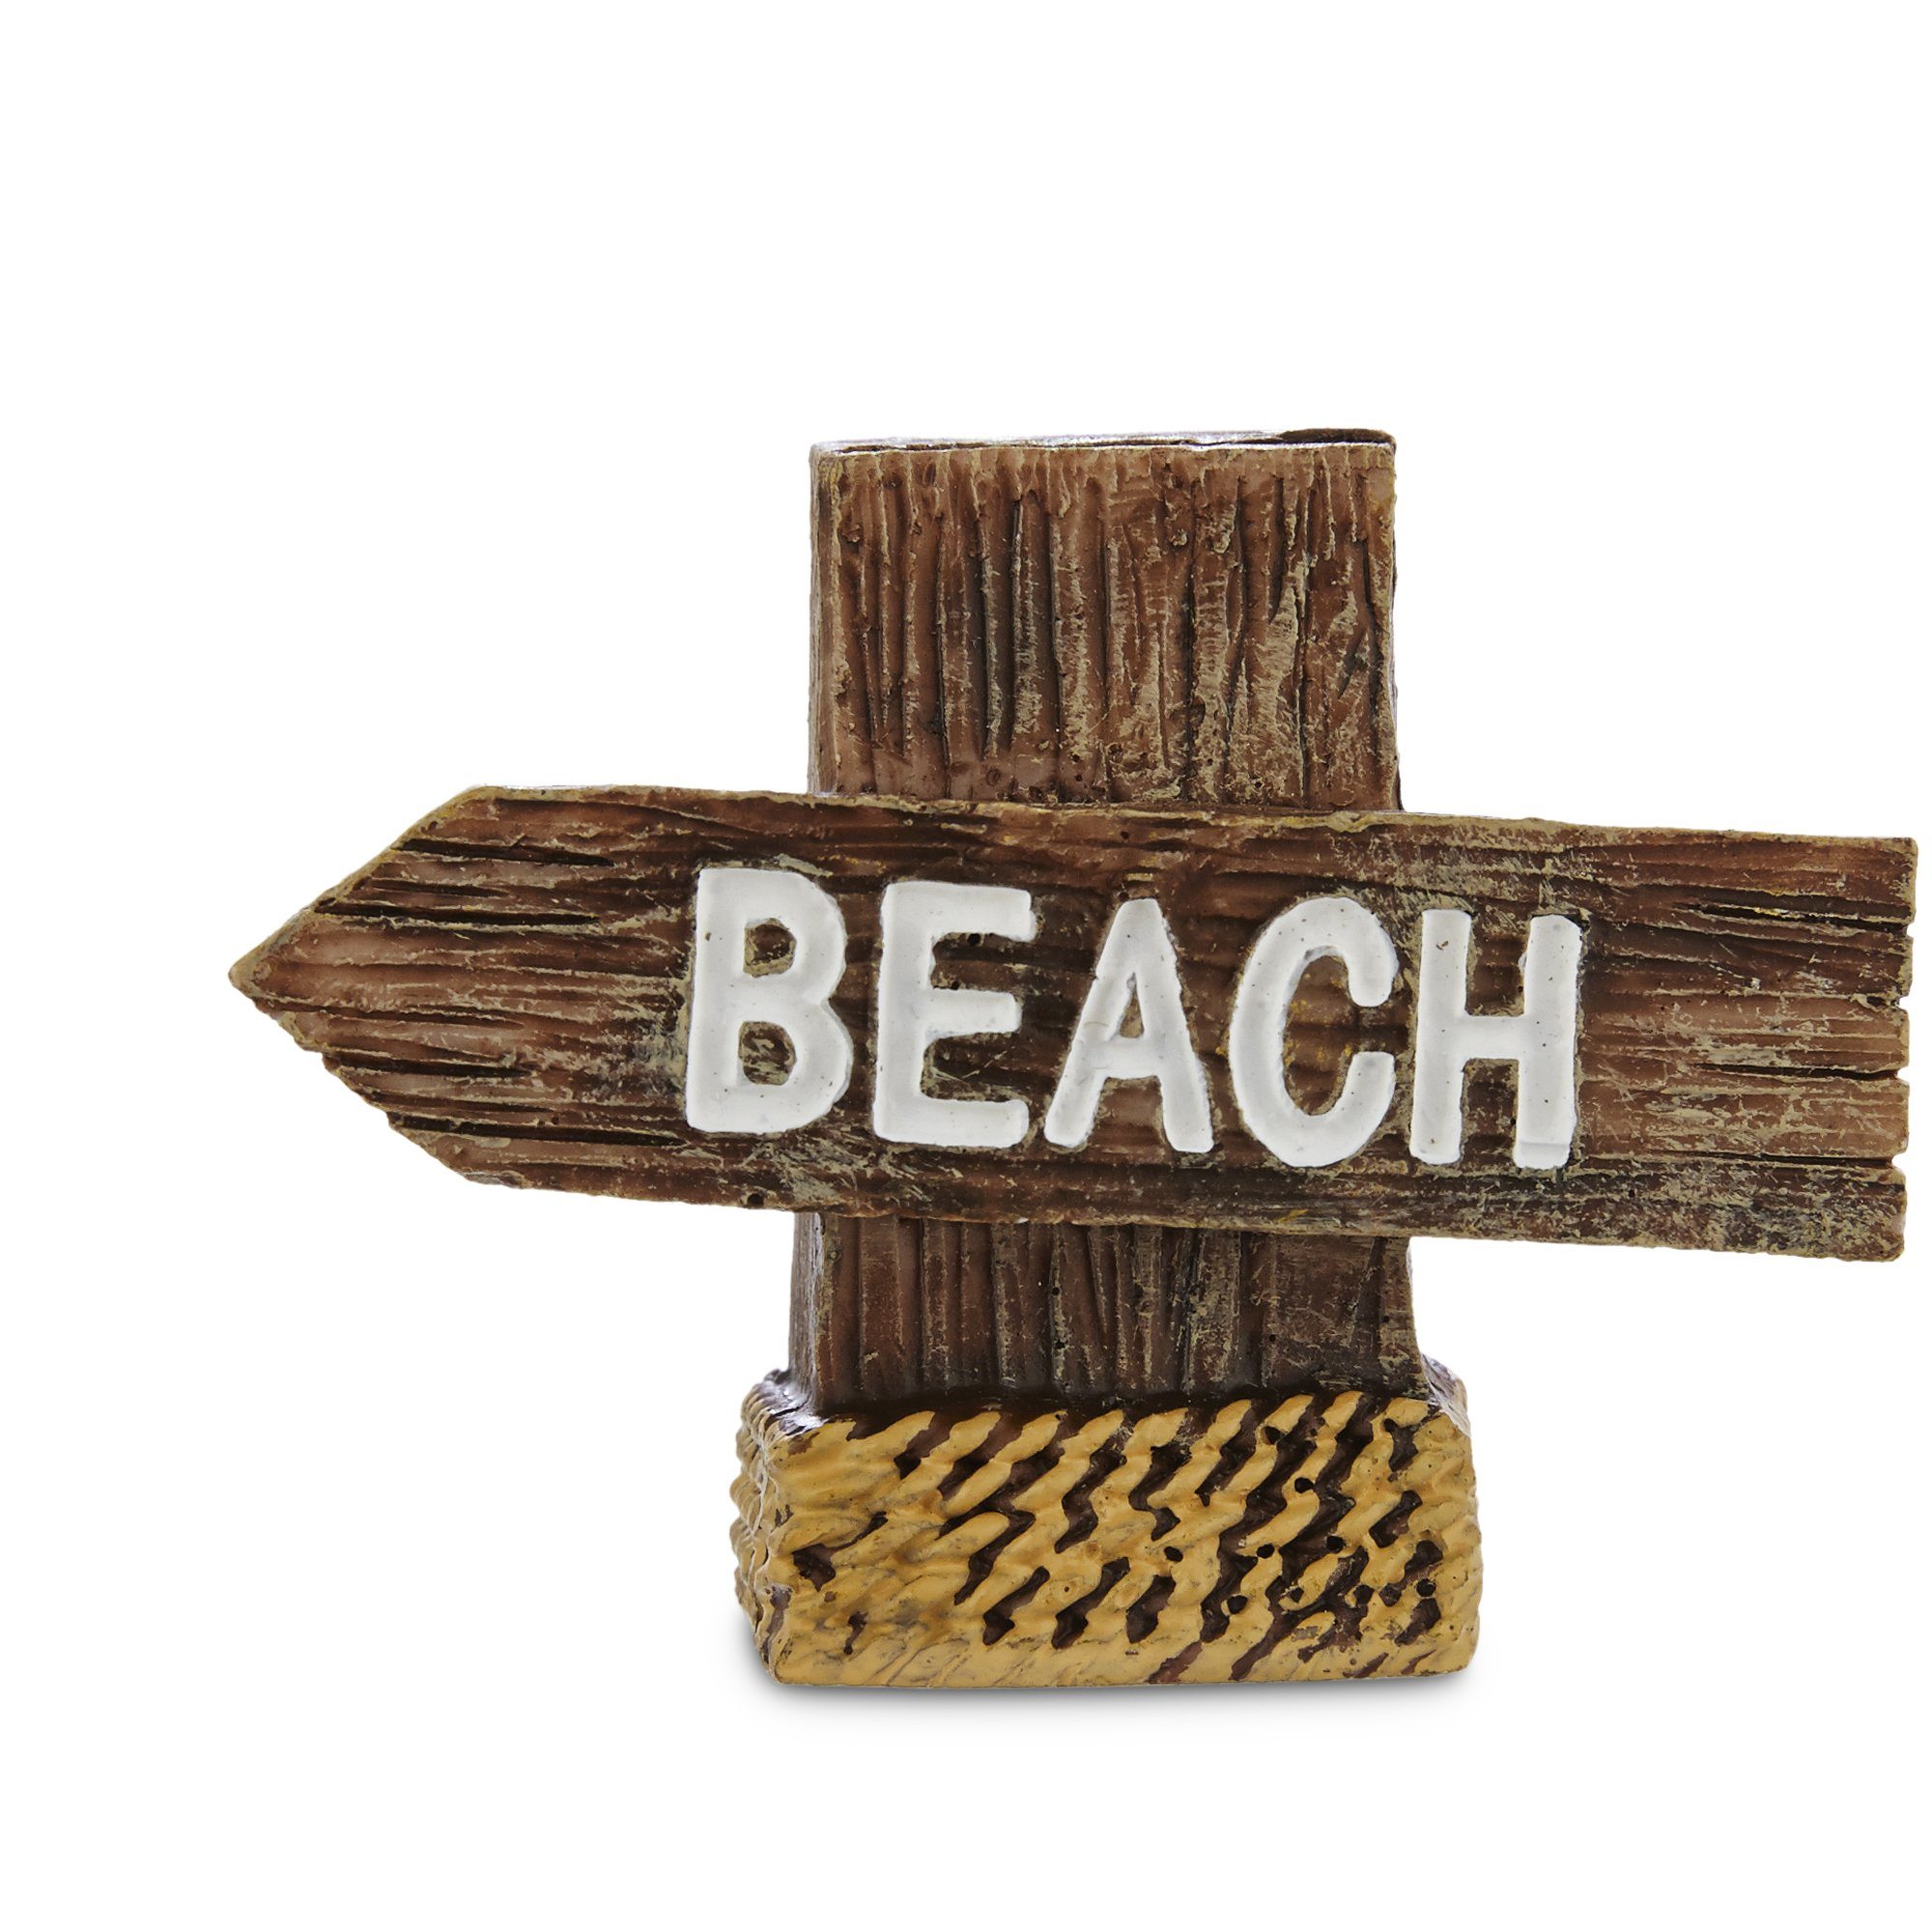 Imagitarium resin beach sign aquatic decor petco for Aquatic decoration